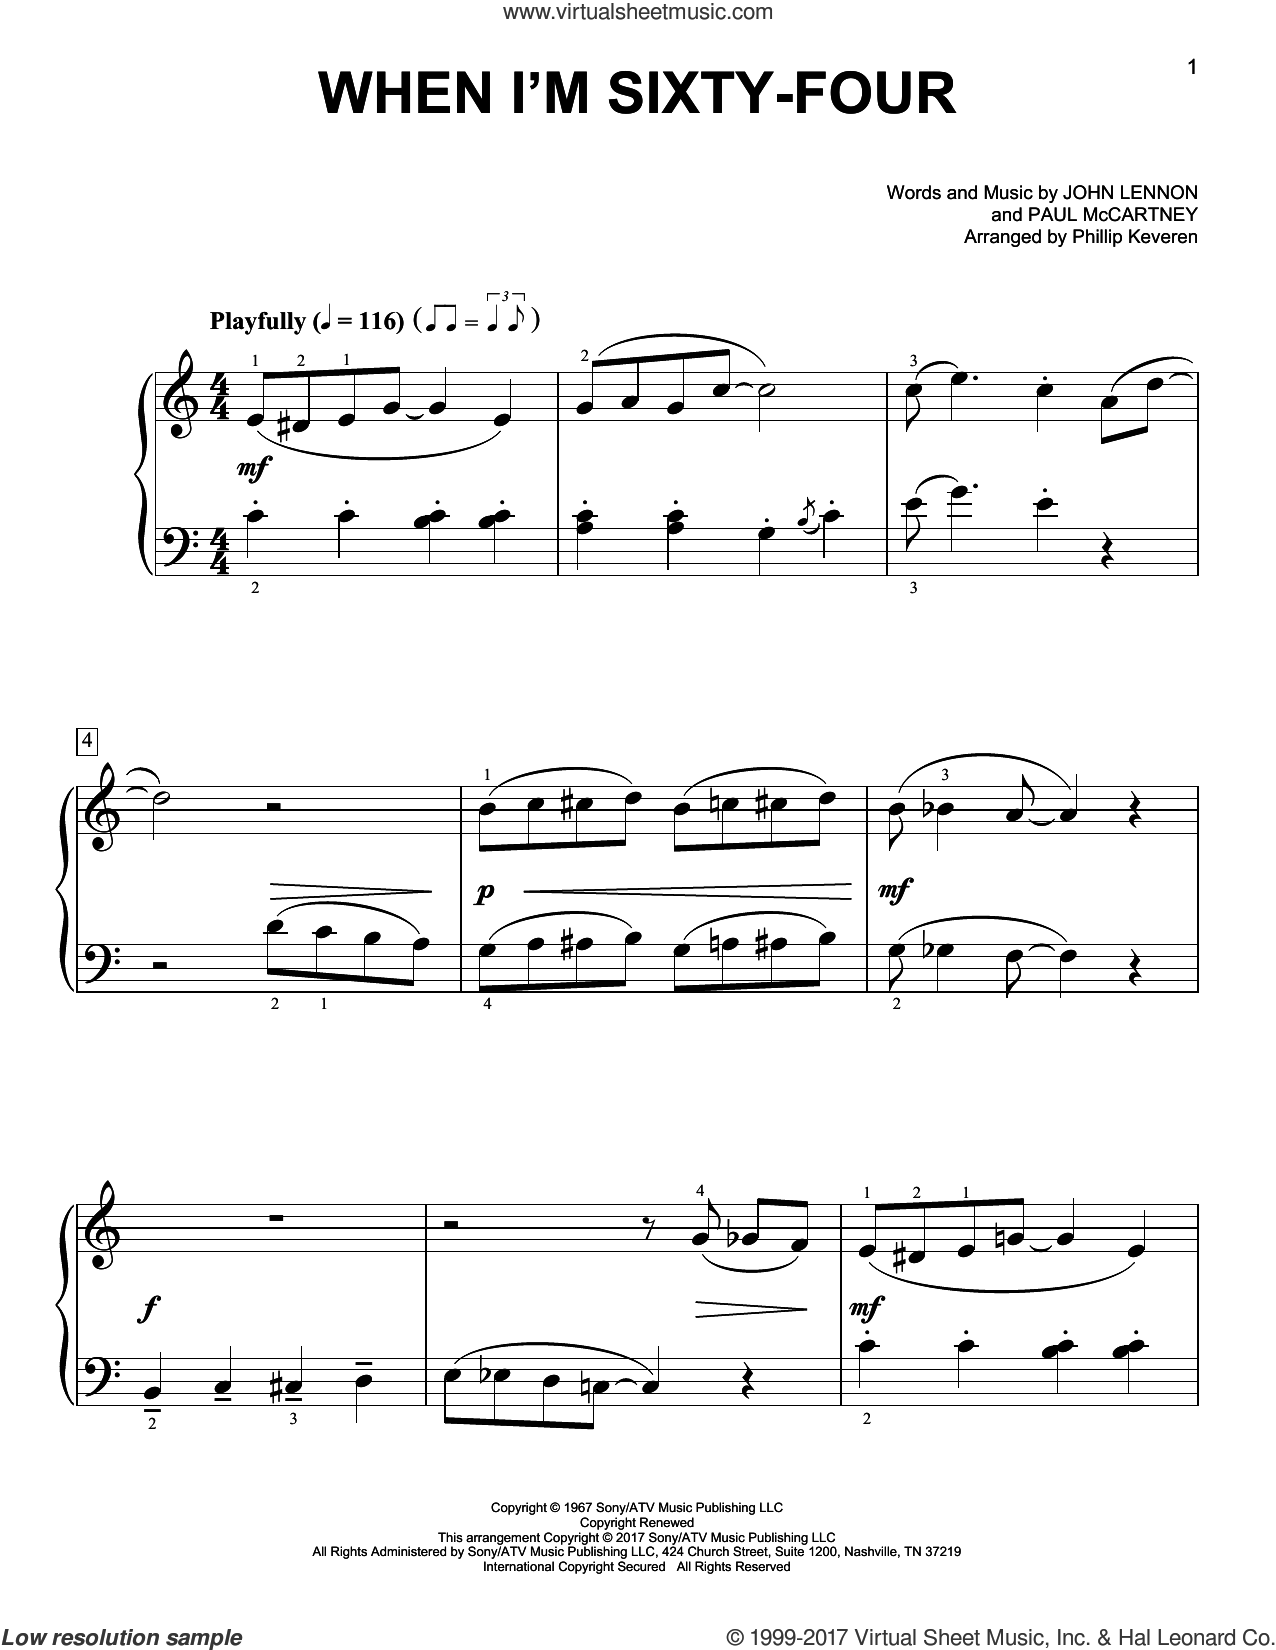 When I'm Sixty-Four sheet music for piano solo by Paul McCartney, Phillip Keveren, The Beatles and John Lennon, easy skill level